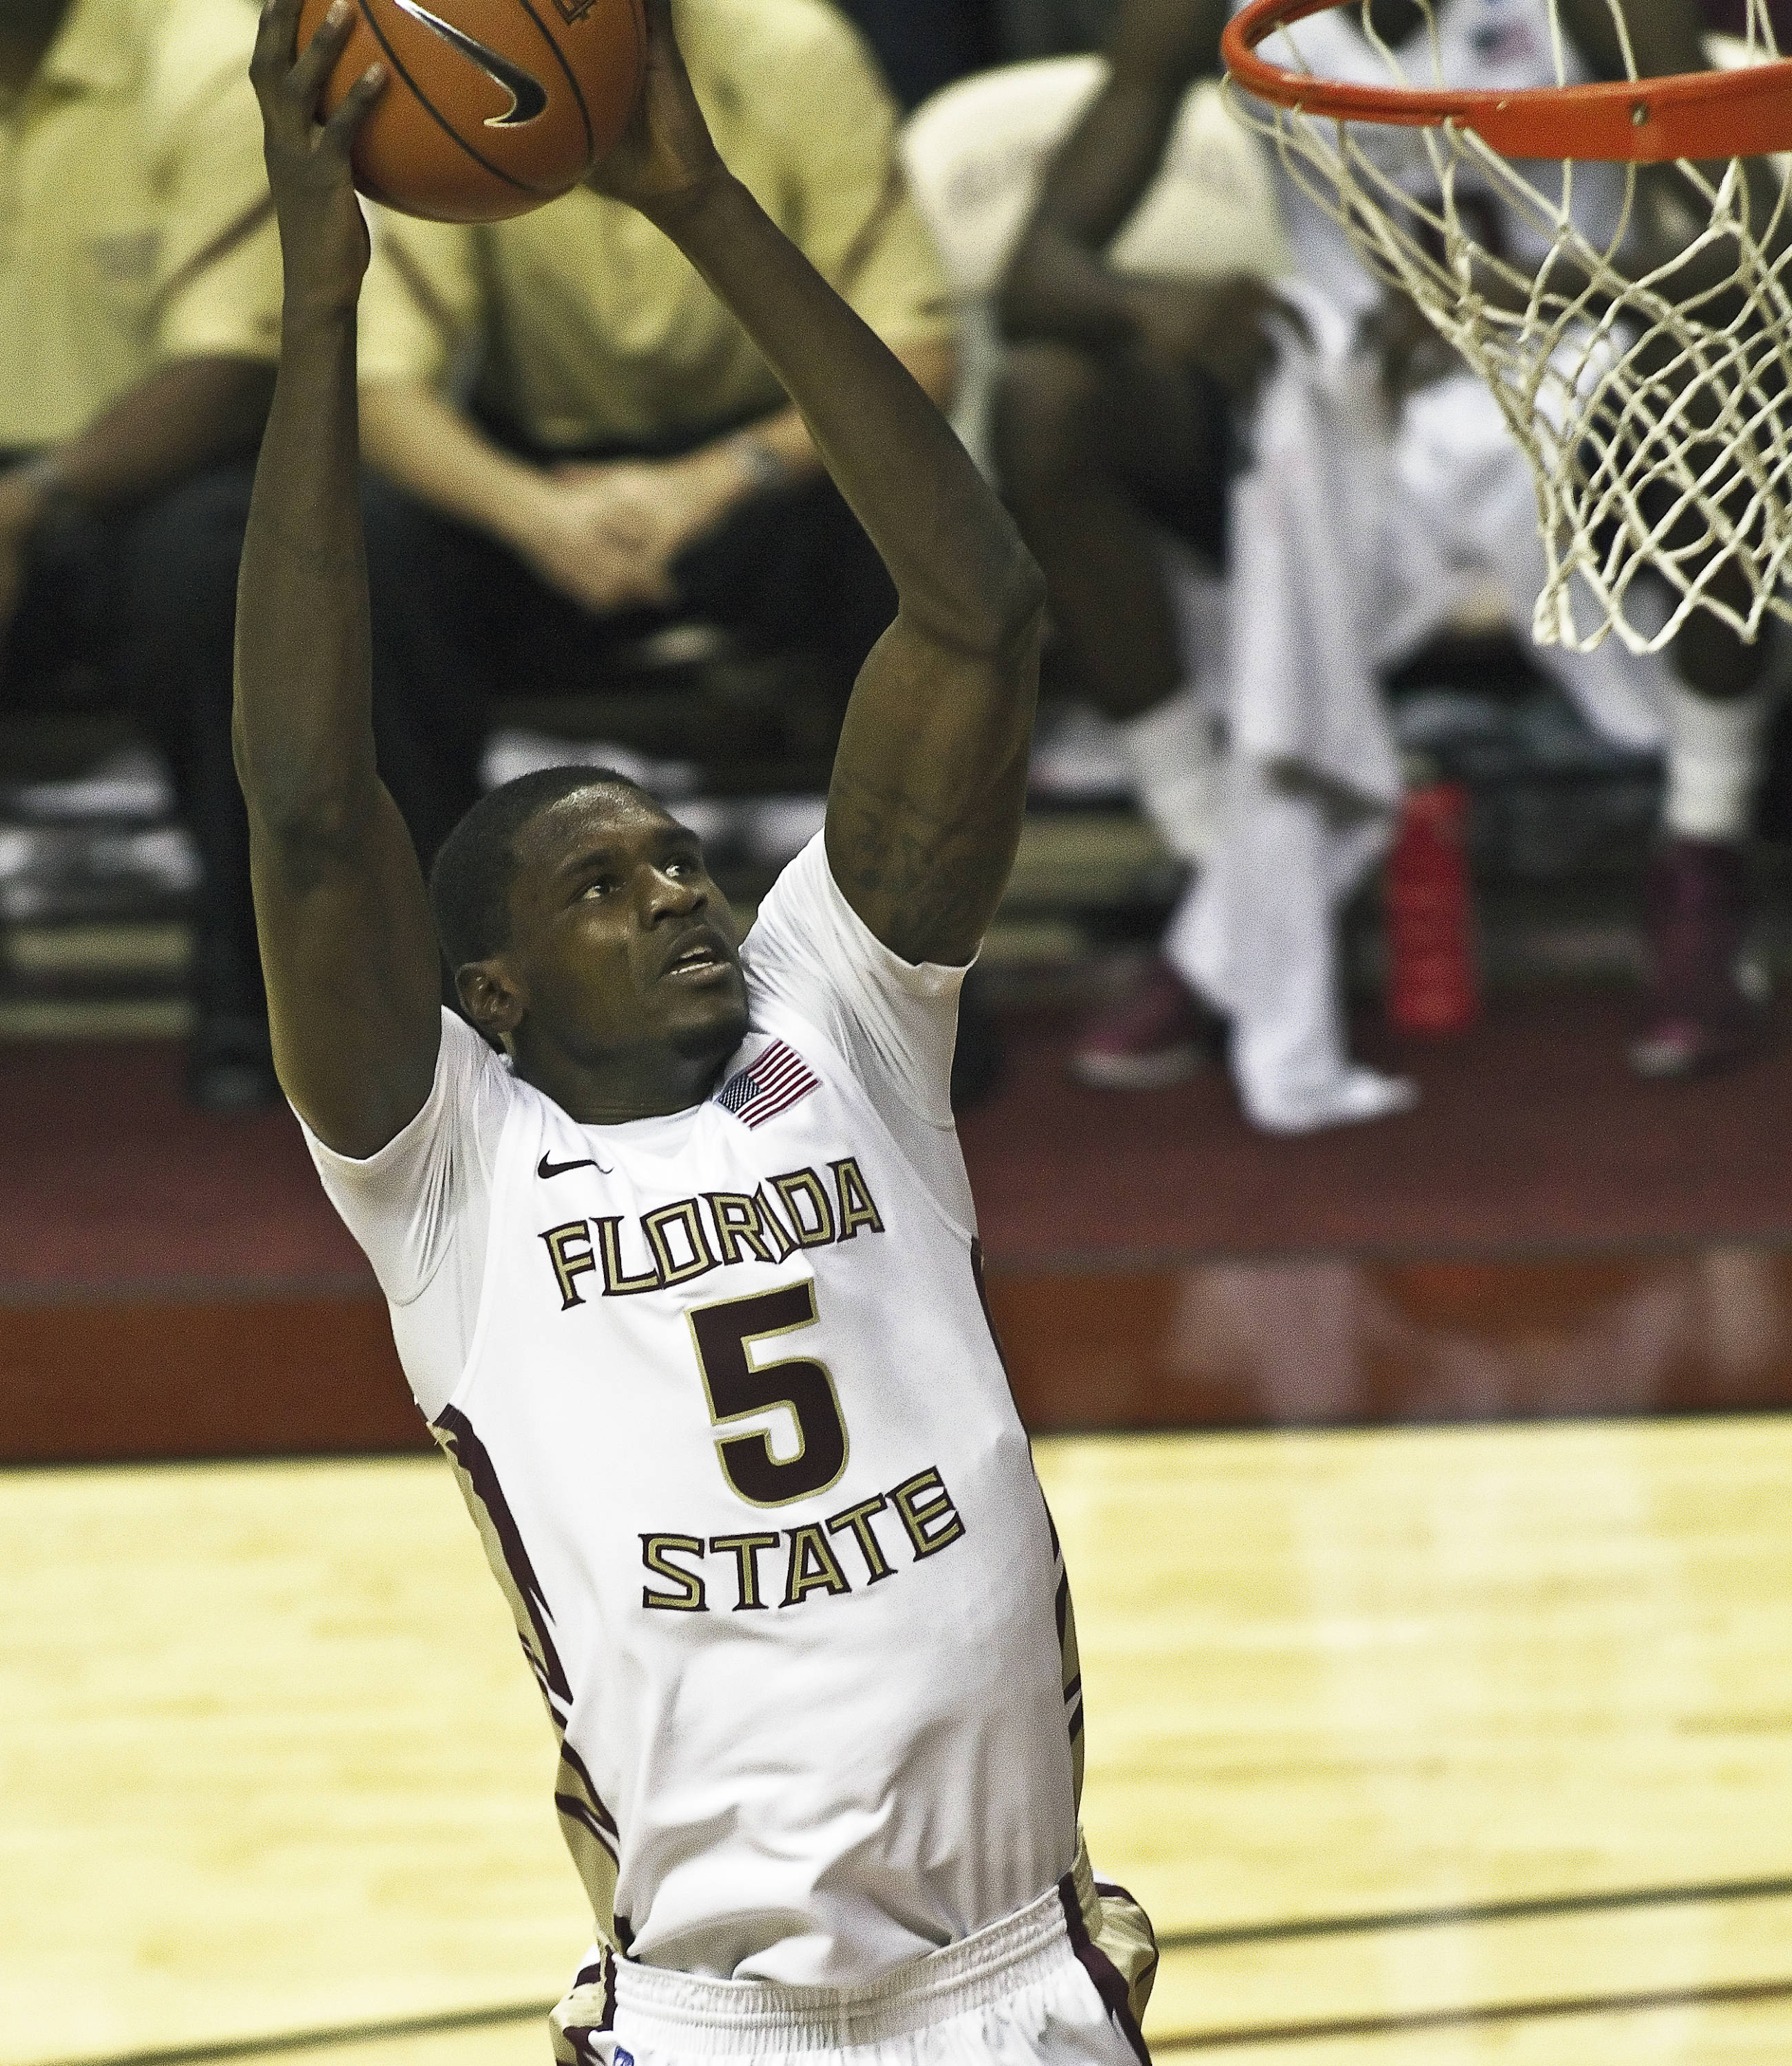 FSU vs Rollins - 11/03/2010 - Bernard James (5)